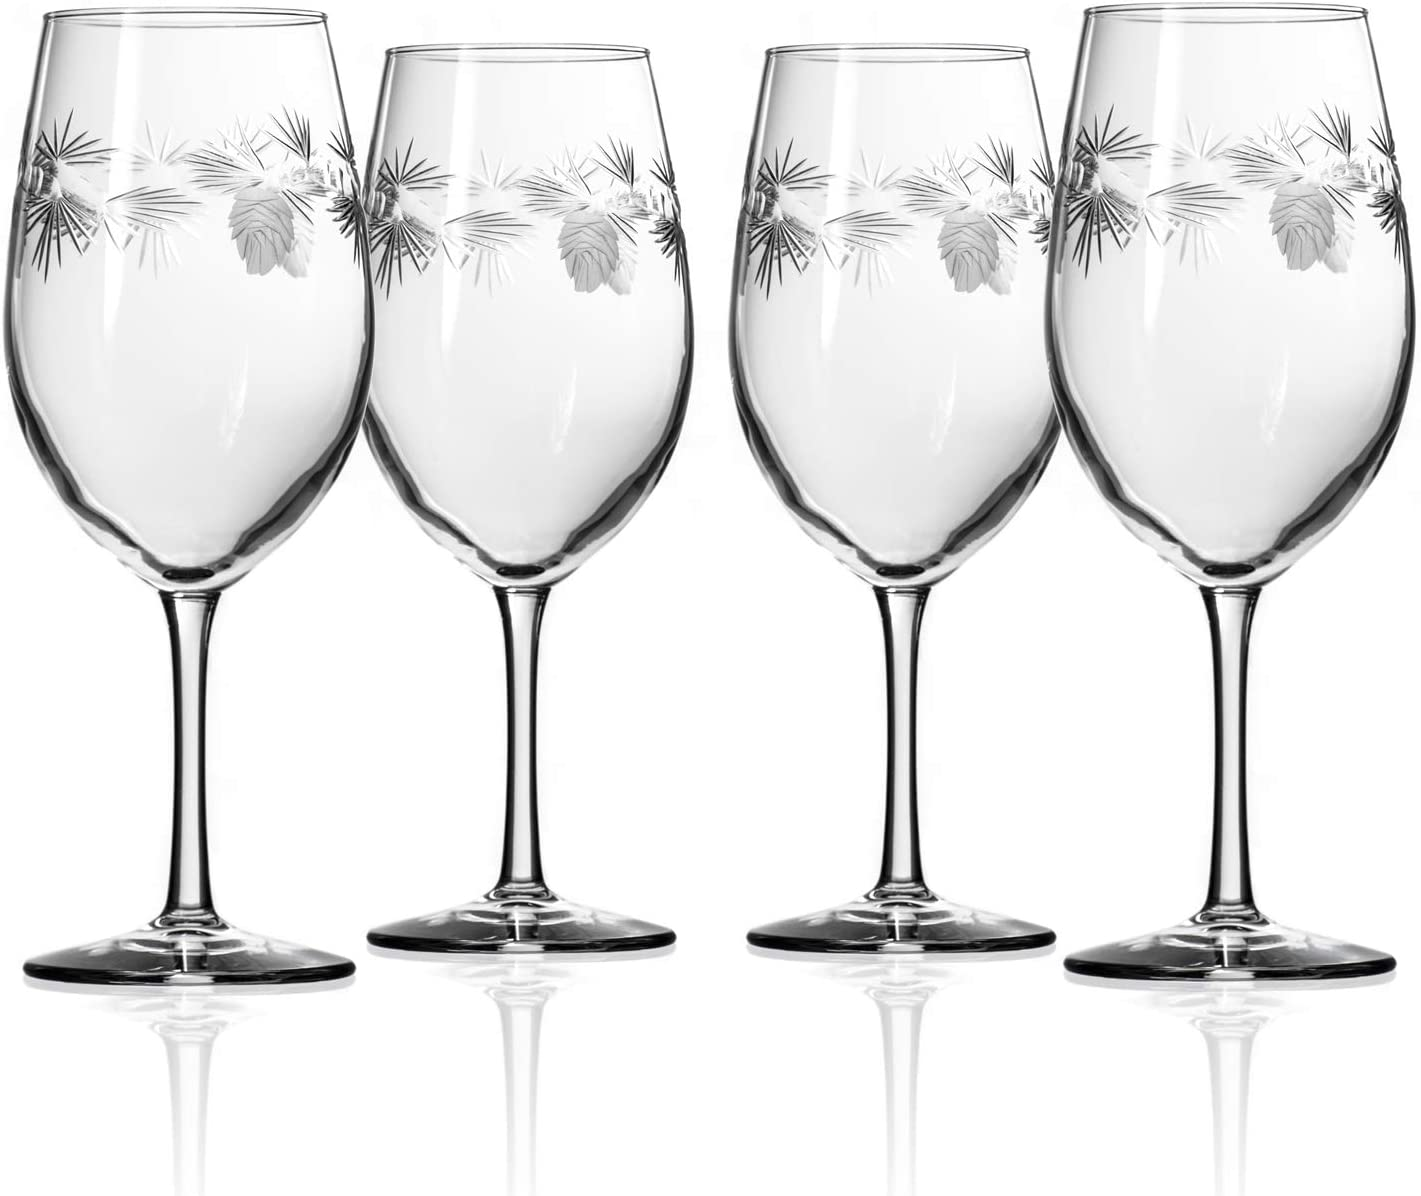 Rolf Glass Icy Pine All Purpose Wine Glass 18 Ounce - Set of 4 Large Wine Glasses – Lead-Free Glass - Engraved Large Wine Glasses – Proudly Made in the USA